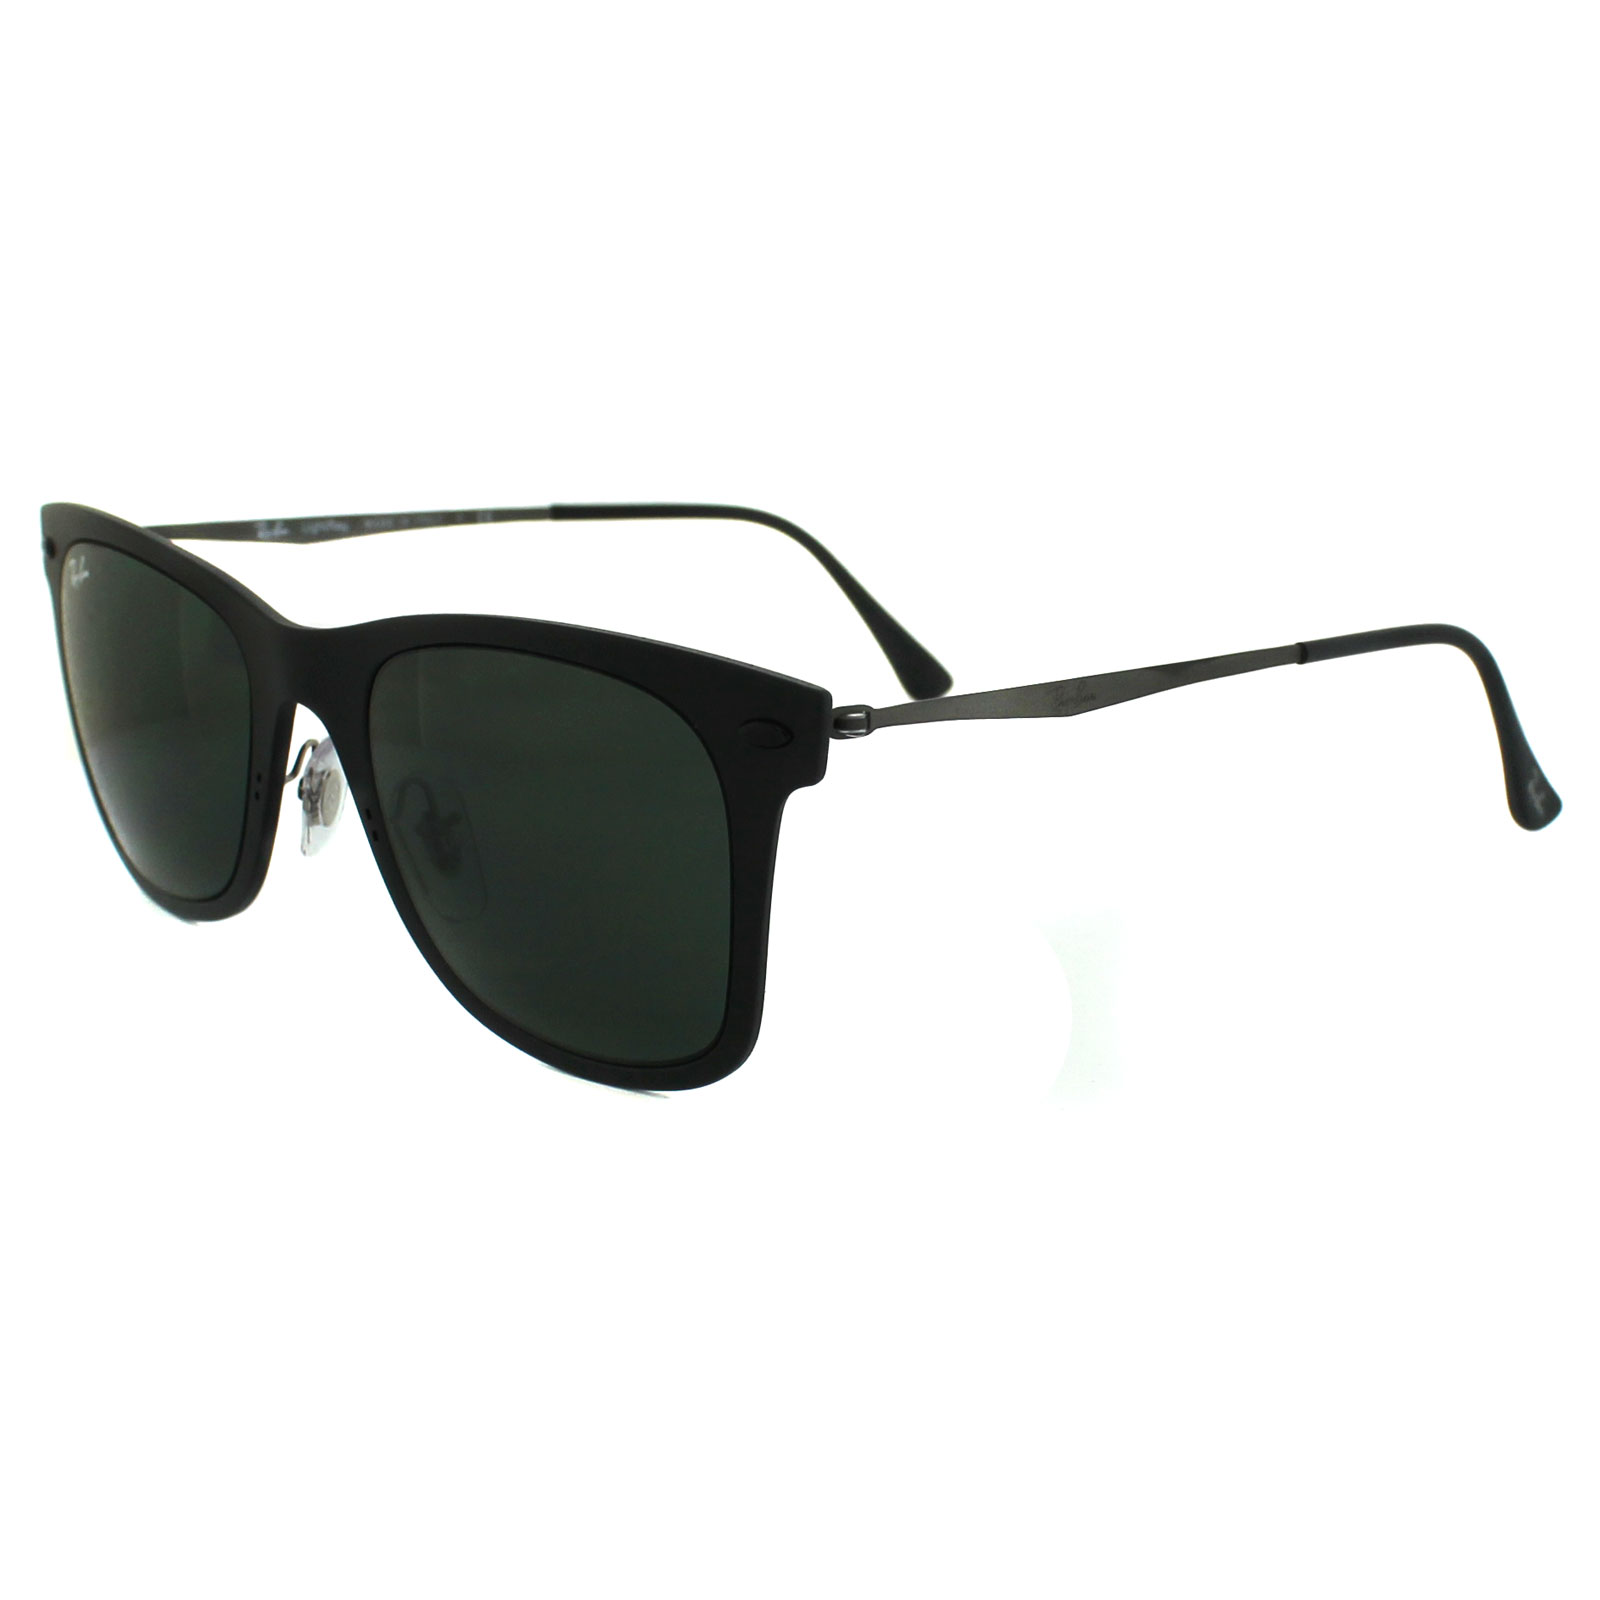 Black Ray Ban Sunglasses  ray ban sunglasses wayfarer light ray 4210 601s71 matt black green